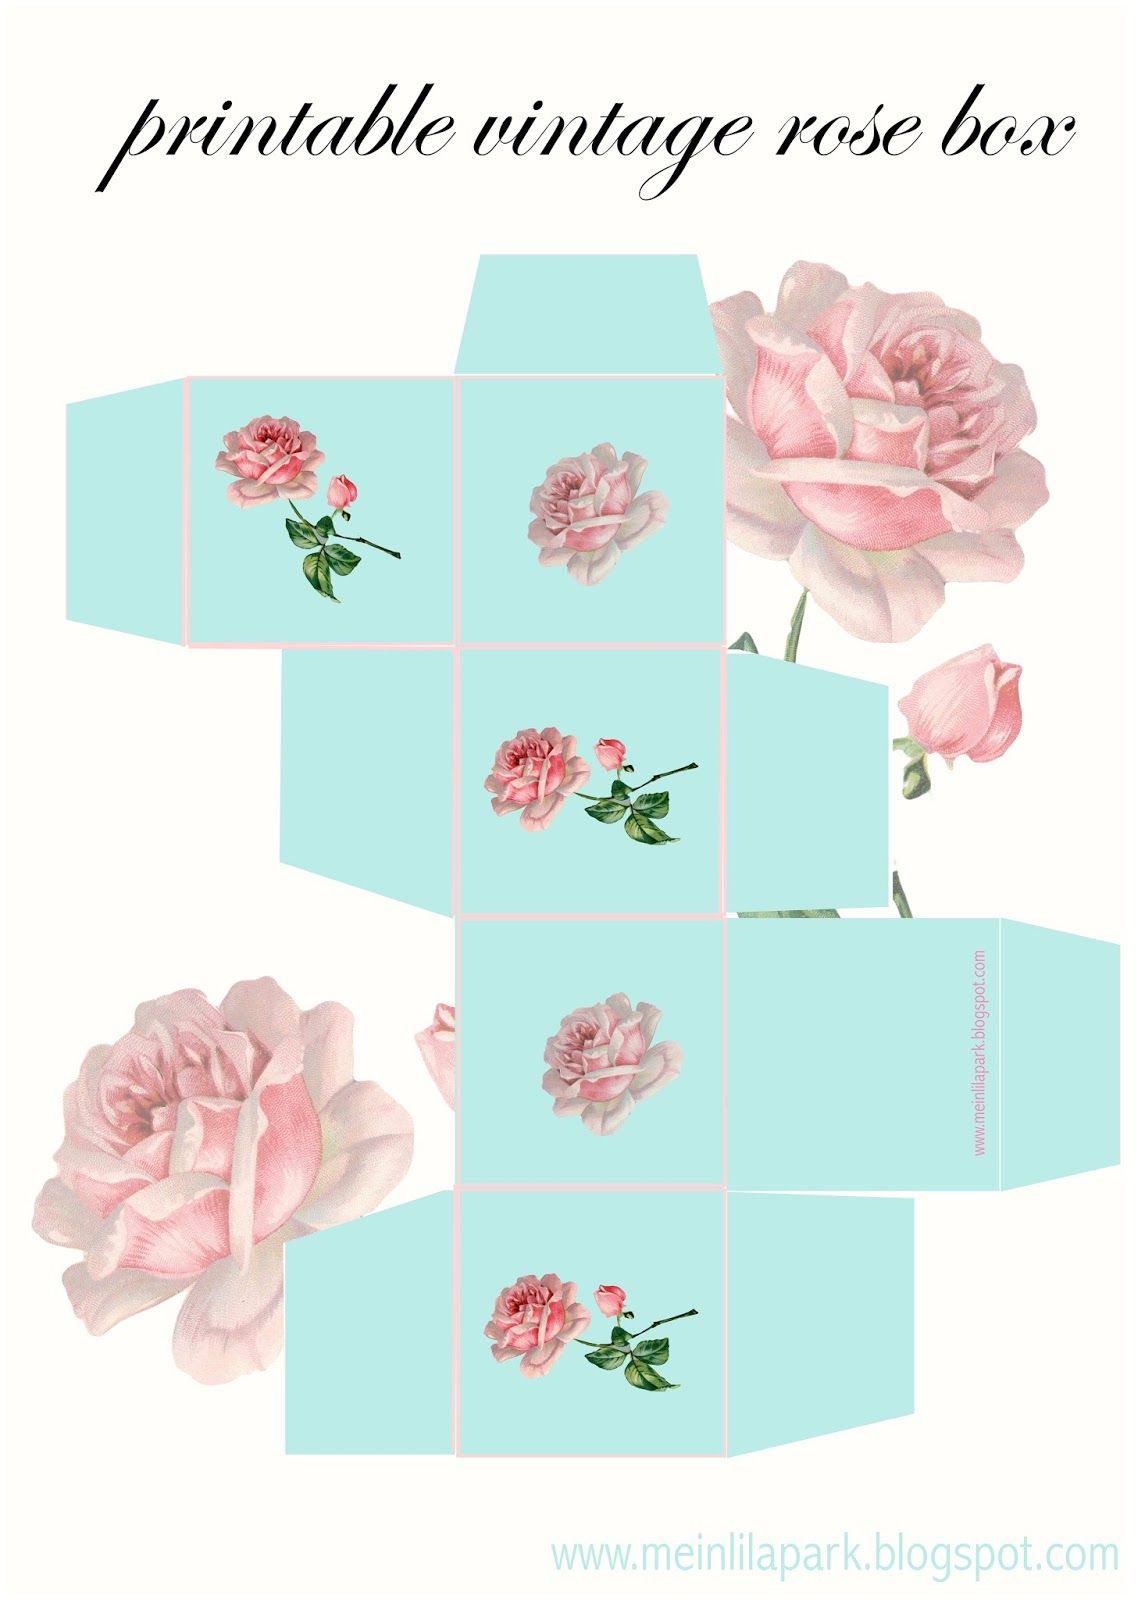 image about Printable Gift Box called cost-free printable common rose present box - ausdruckbare